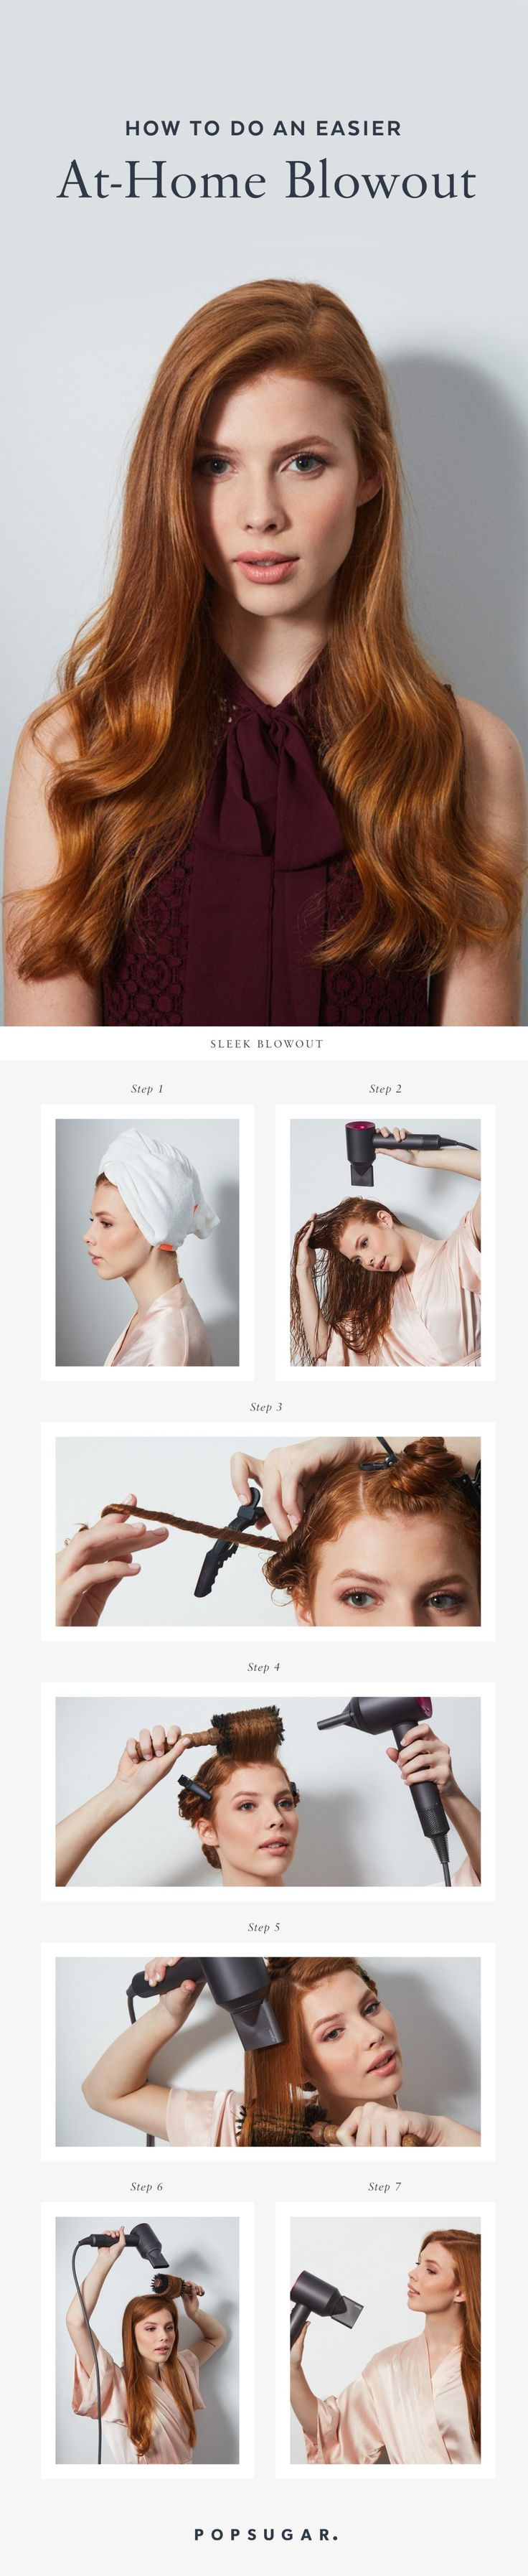 How to achieve a perfectly smooth blowout at home